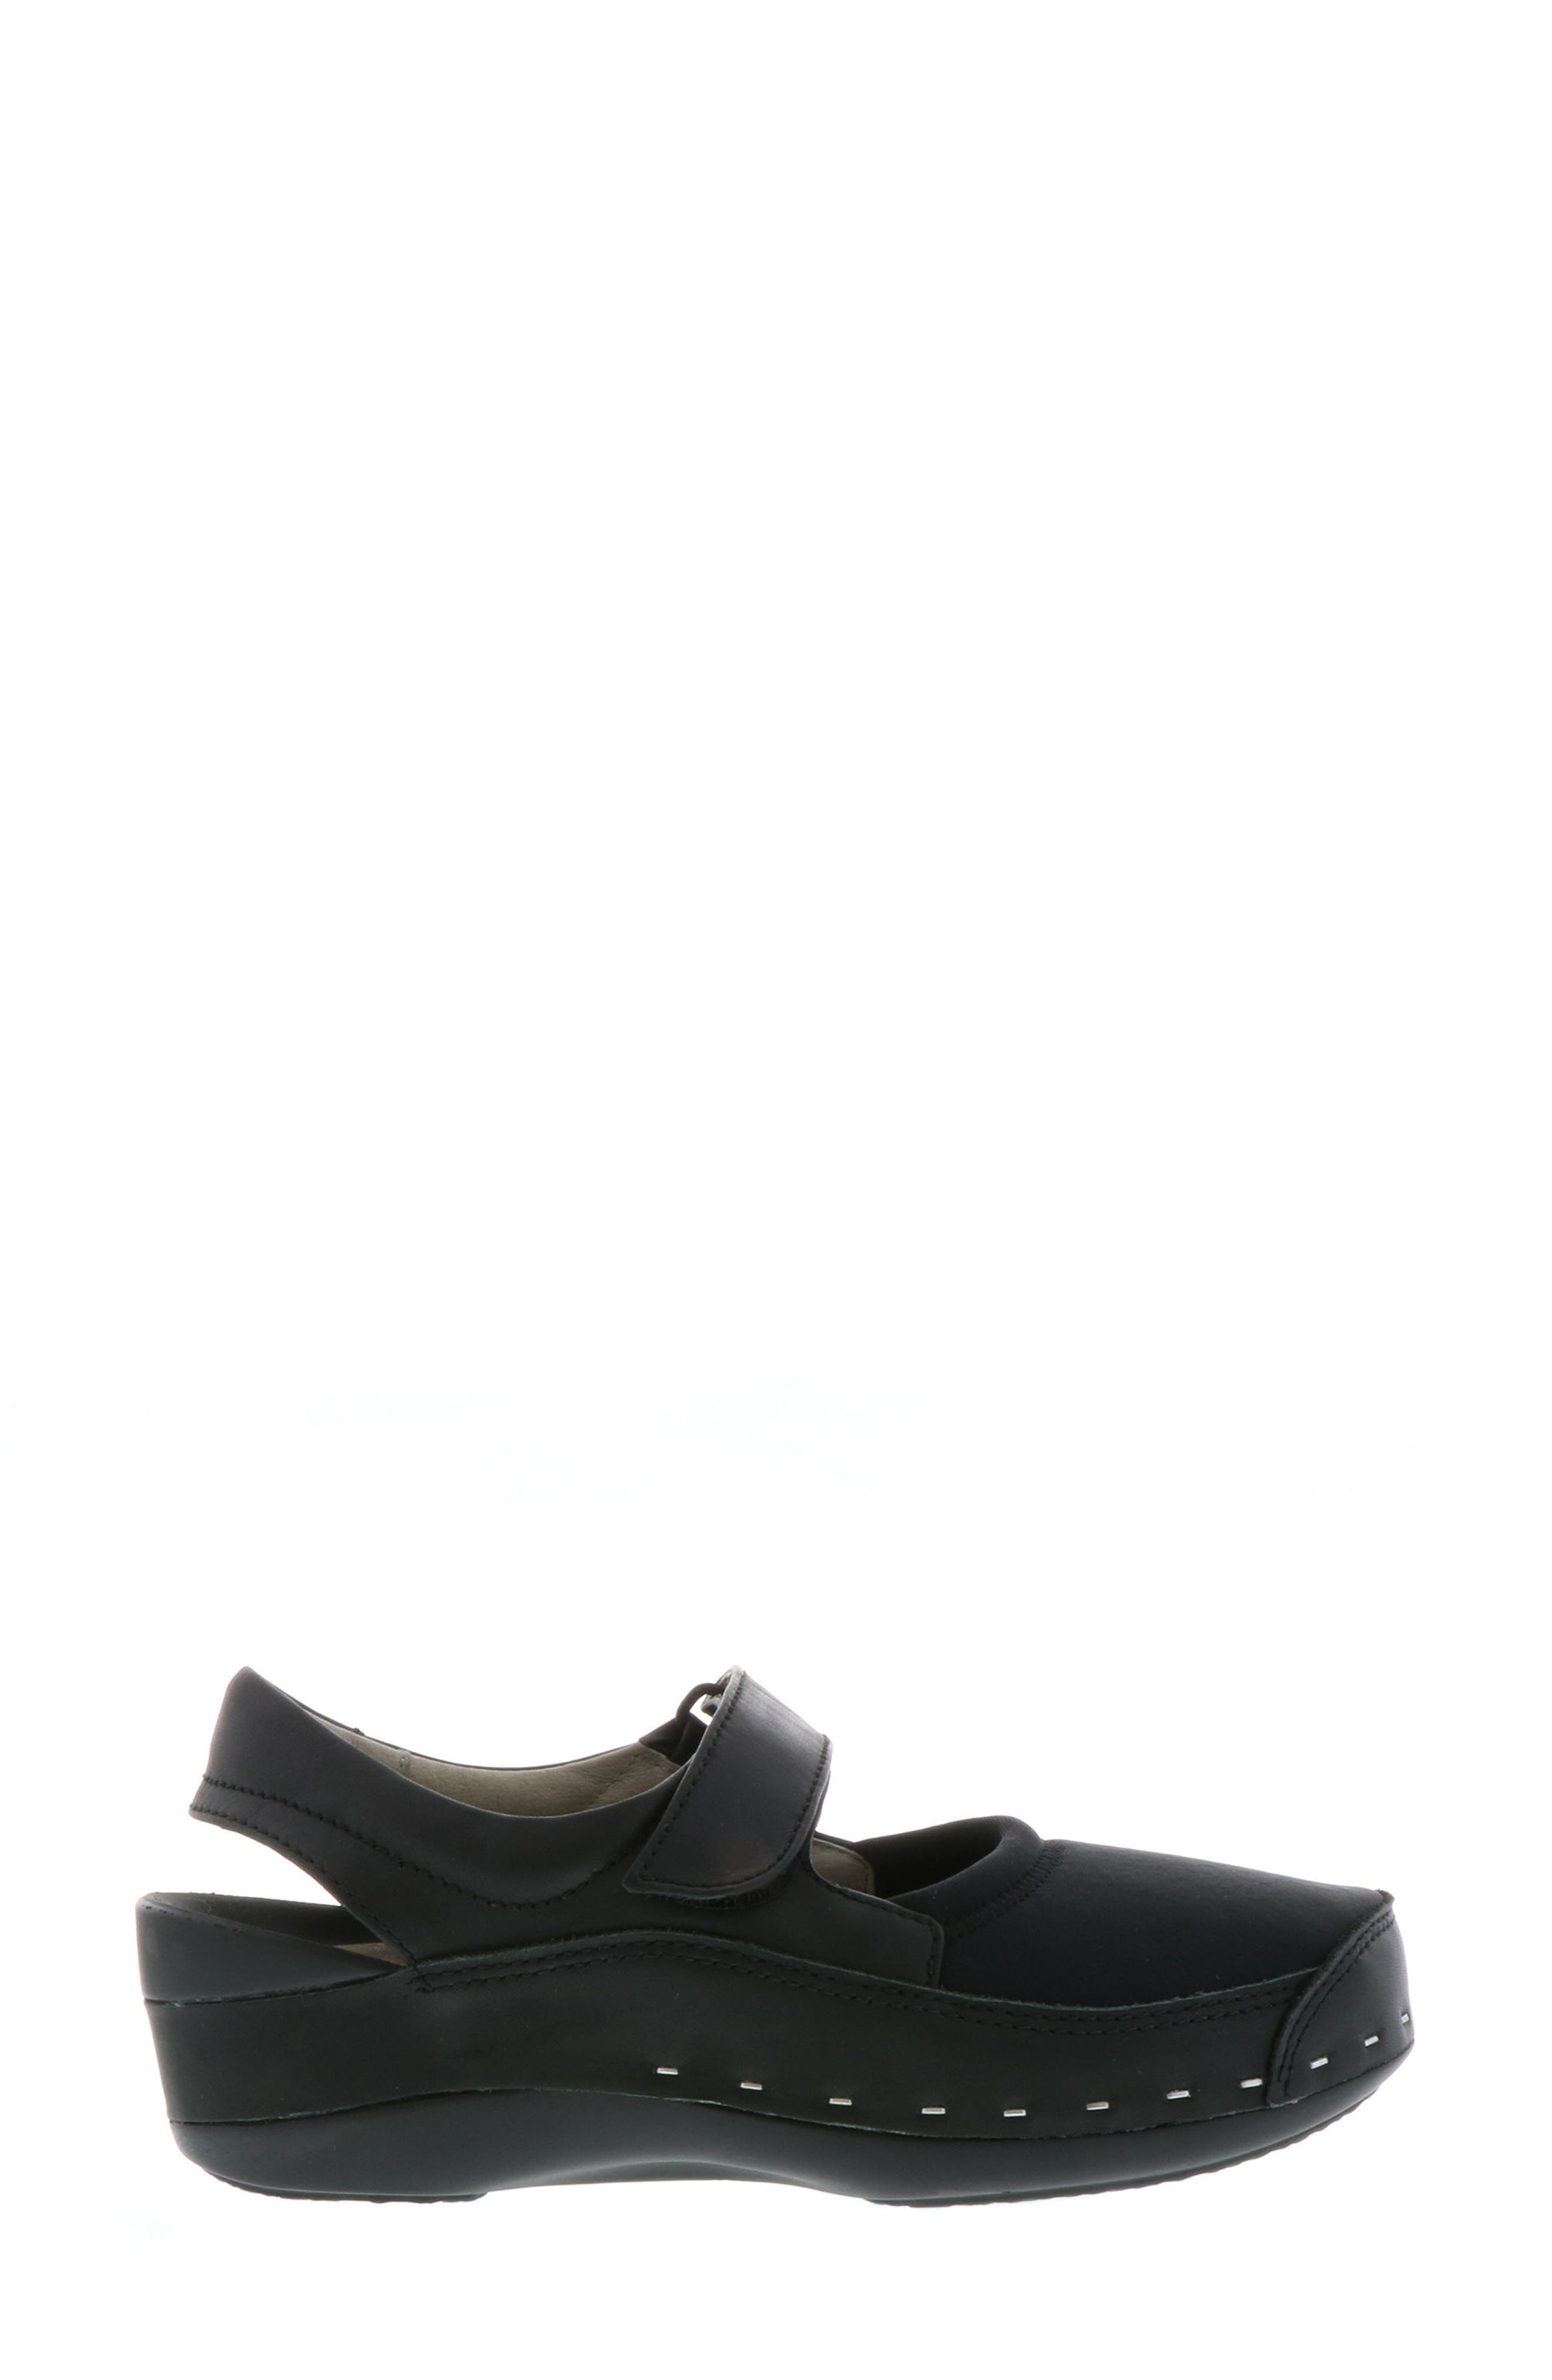 WOLKY,                             Ankle Strap Clog,                             Alternate thumbnail 3, color,                             BLACK LEATHER